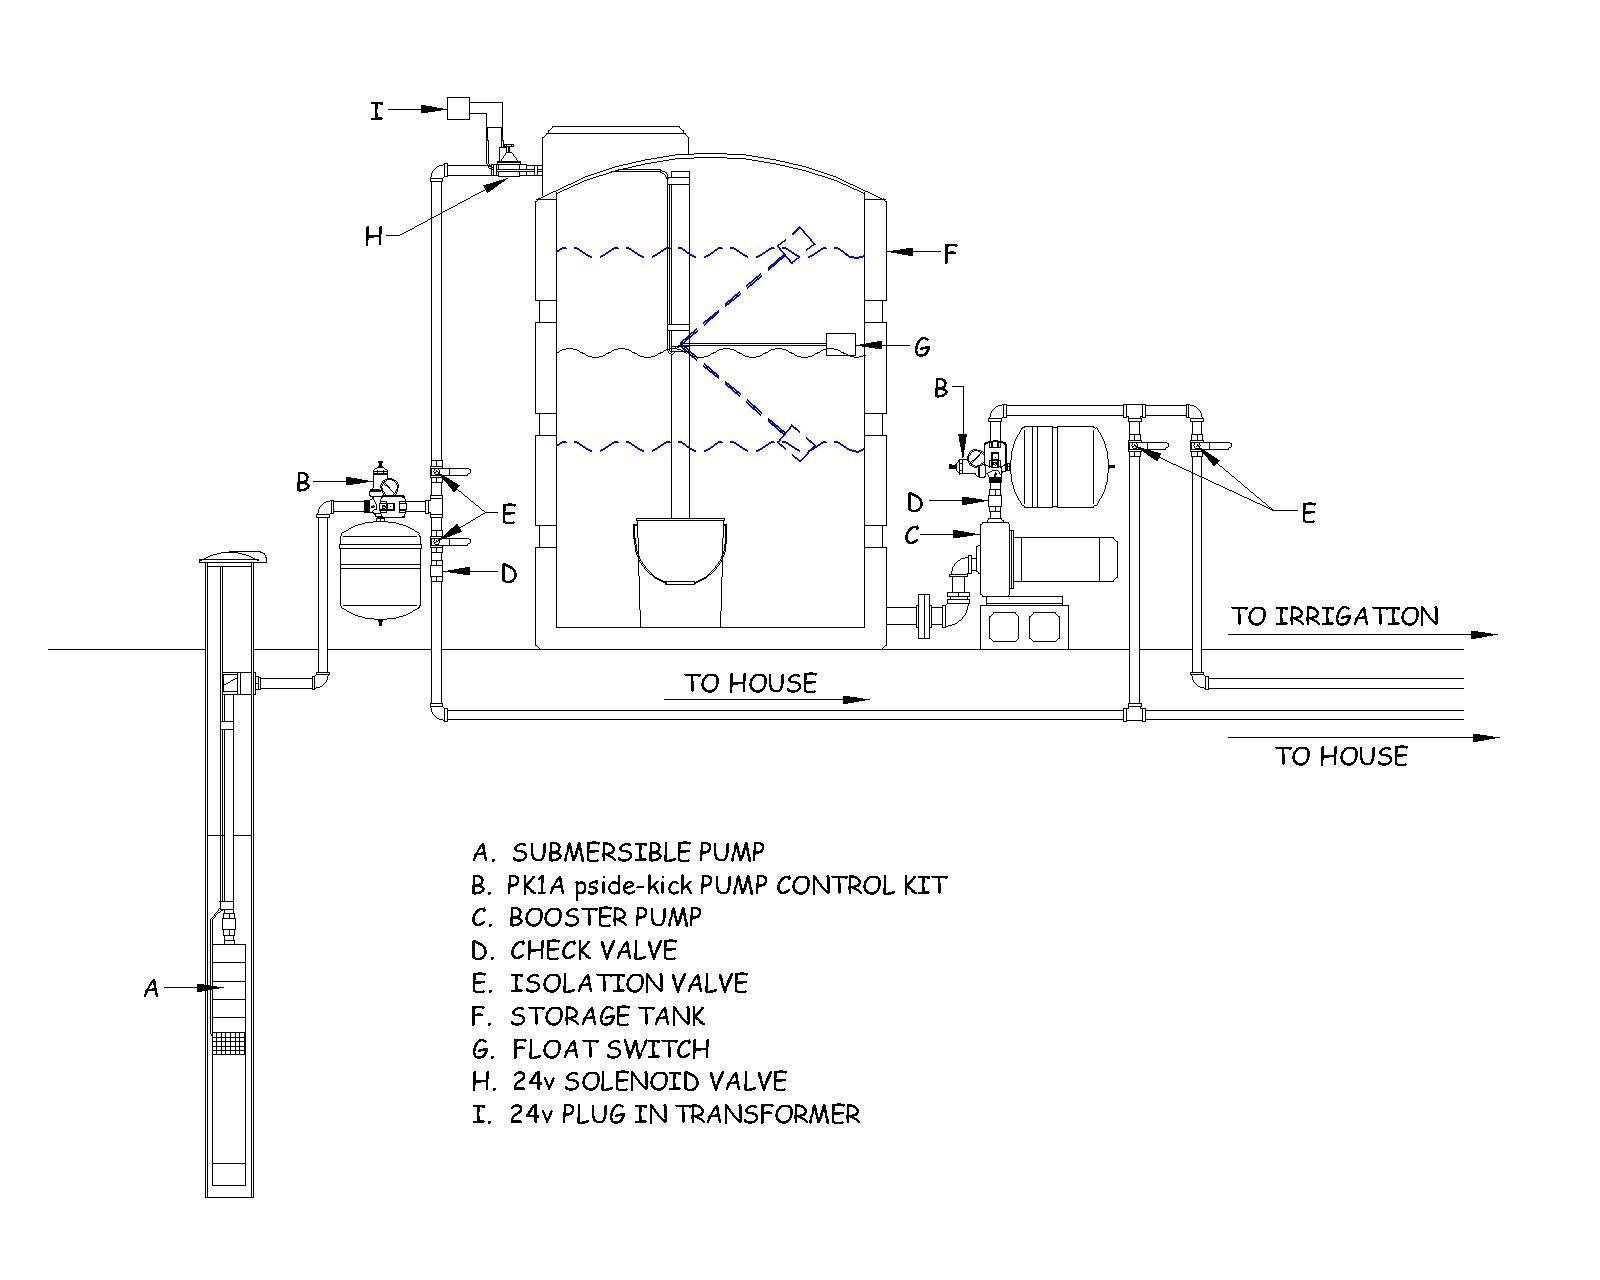 hight resolution of square d well pump pressure switch wiring diagram wiring diagram for well pump pressure switch